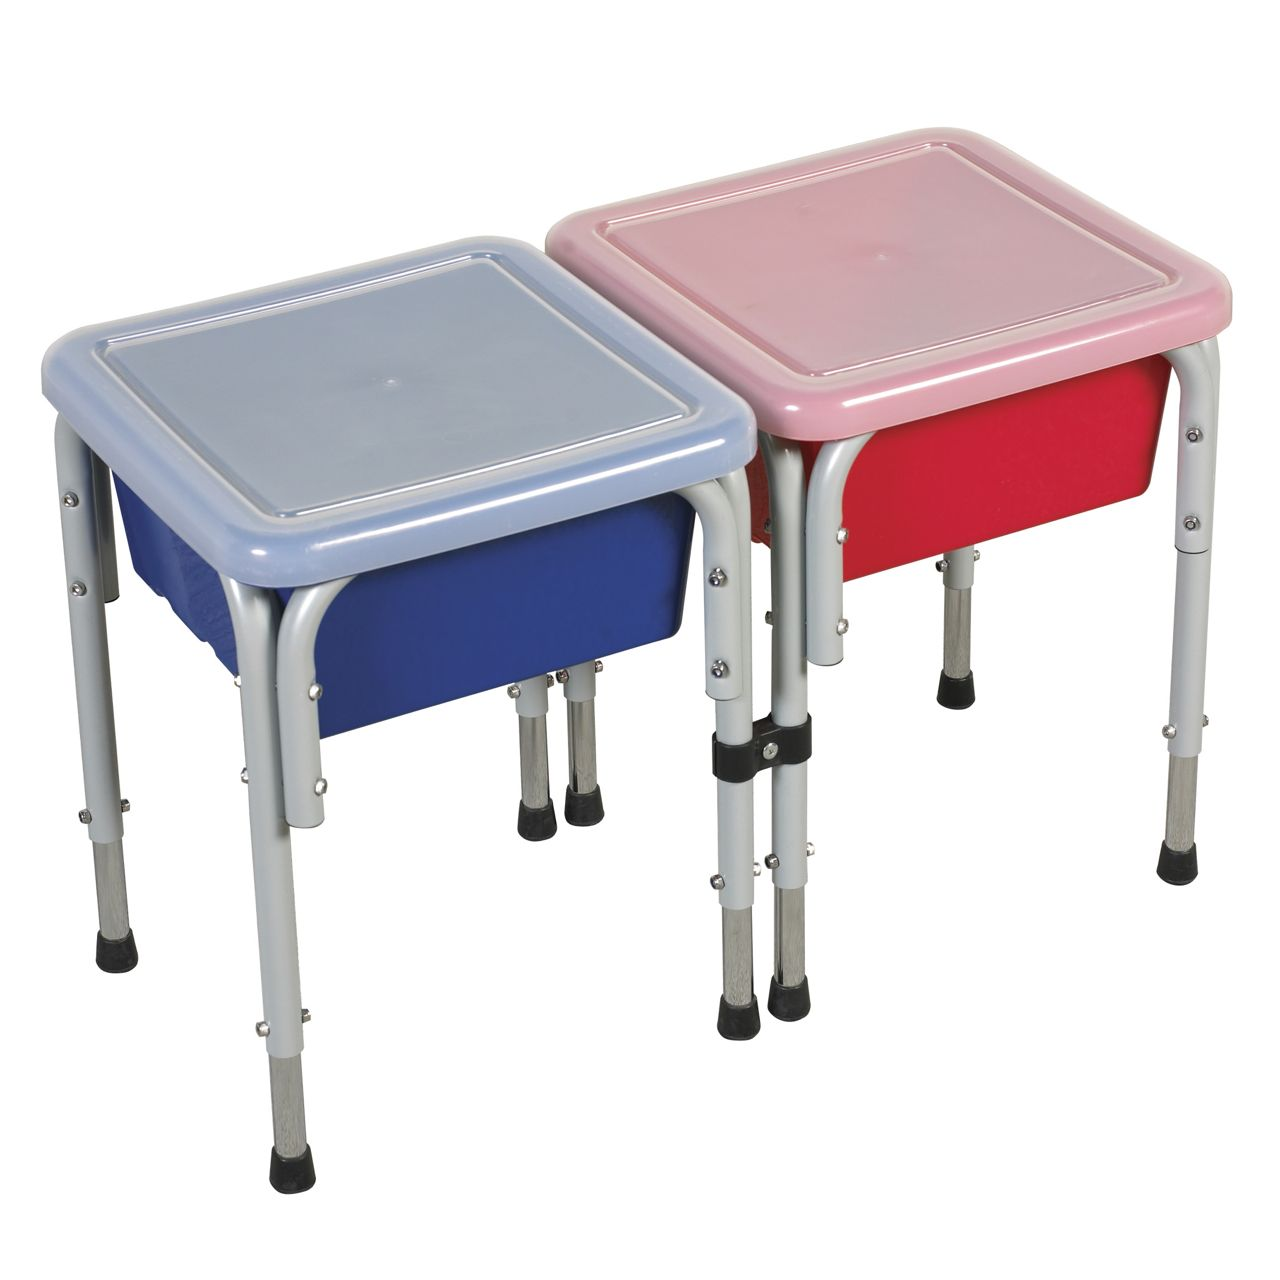 Ecr4kids Two Station Square Sand Water Table With Lids